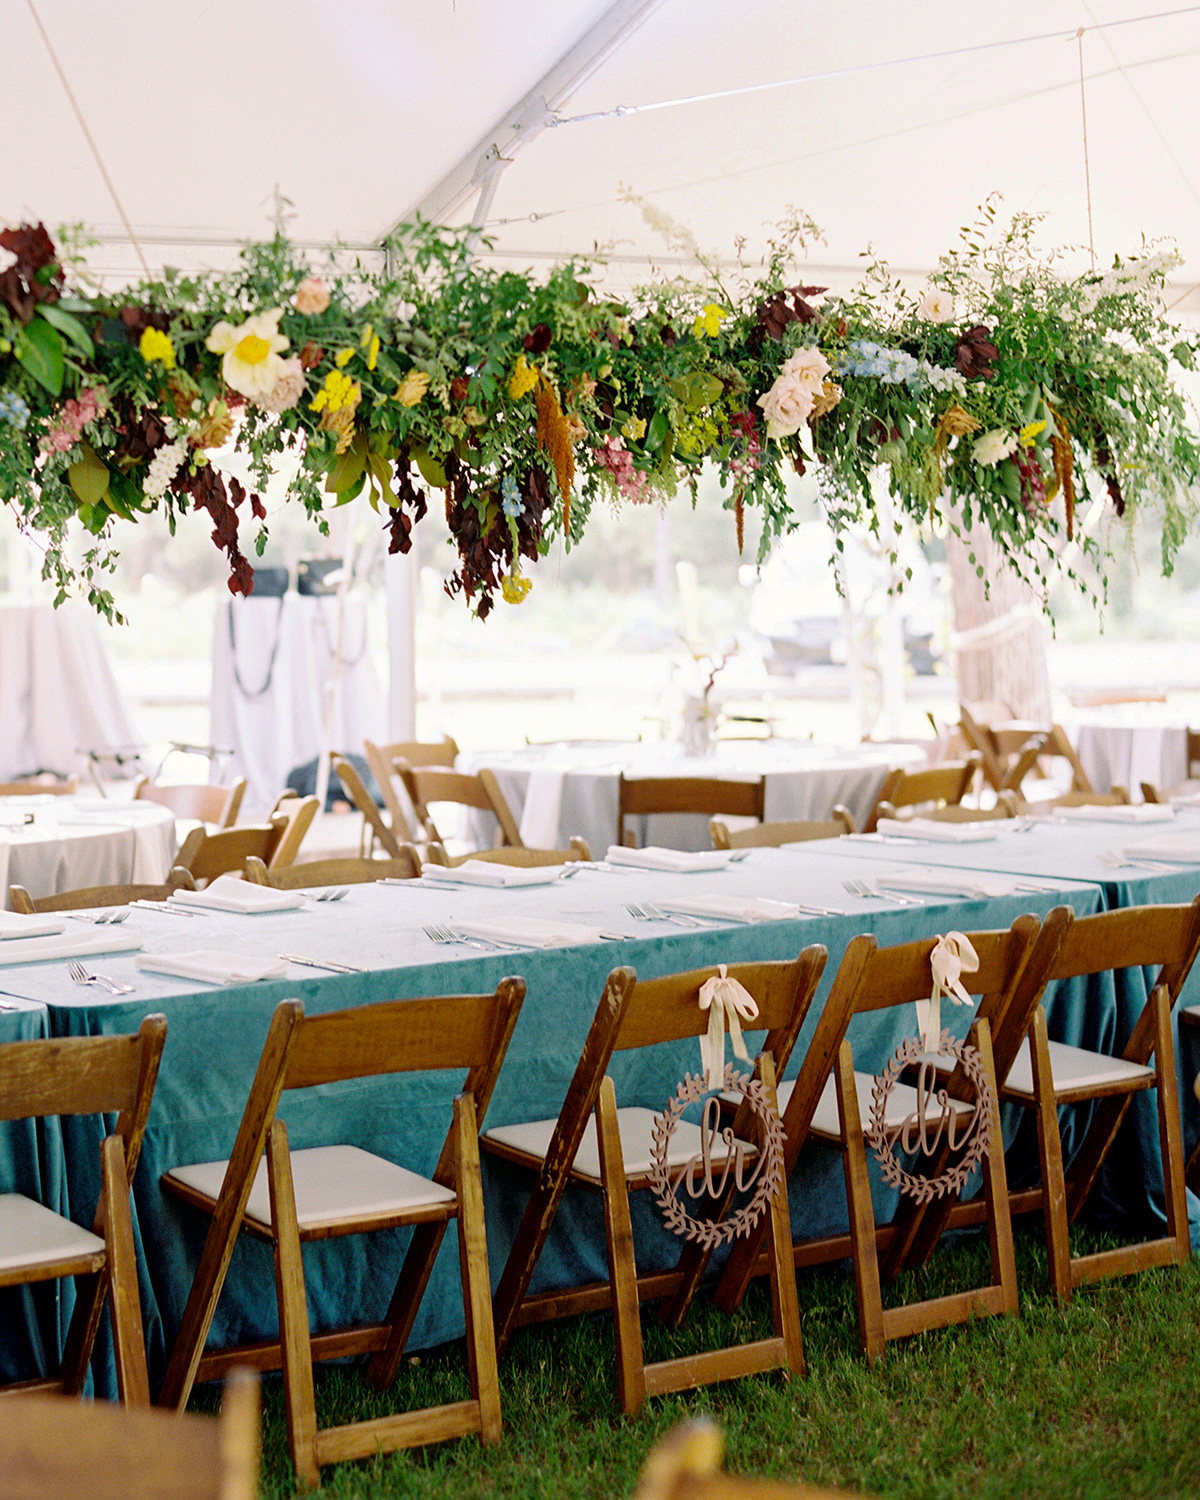 Picnic gazebo seating for wedding with folding chairs and long floral arrangement